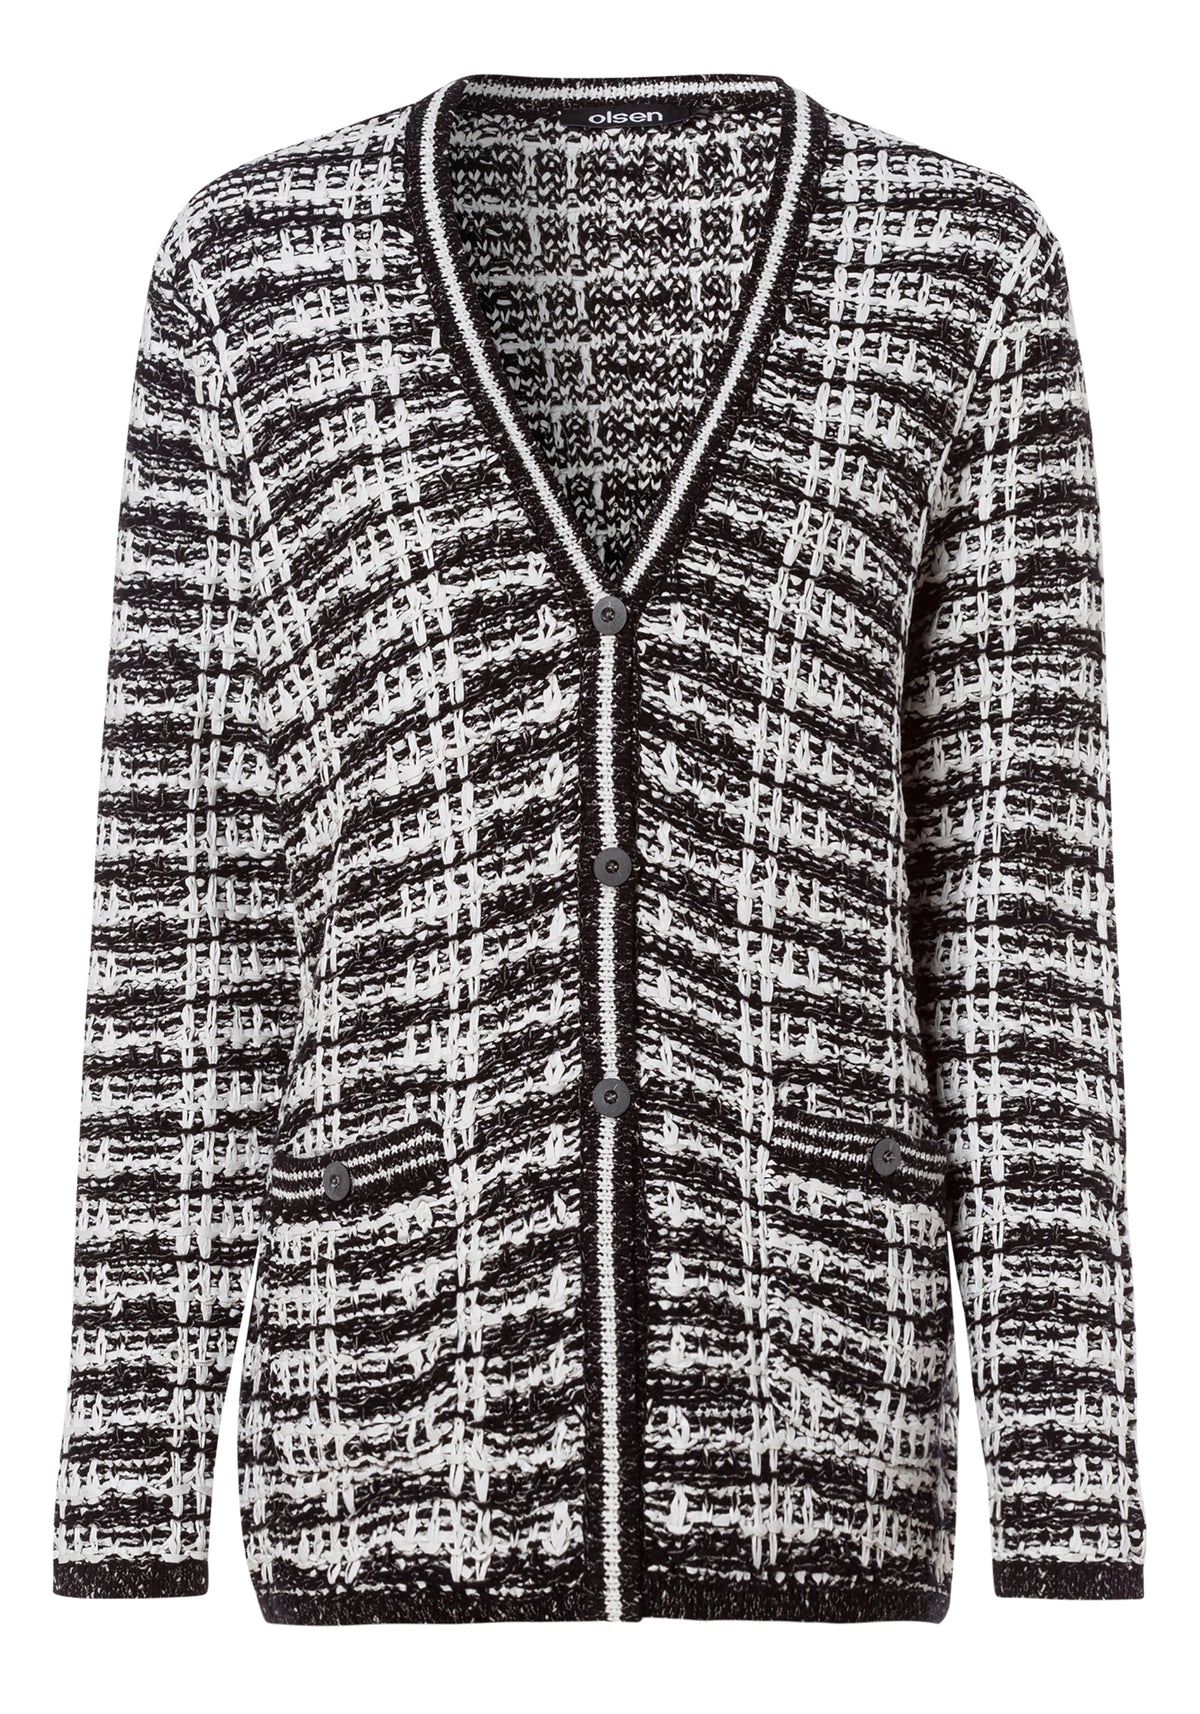 Contrast Knit Button-Down Cardigan